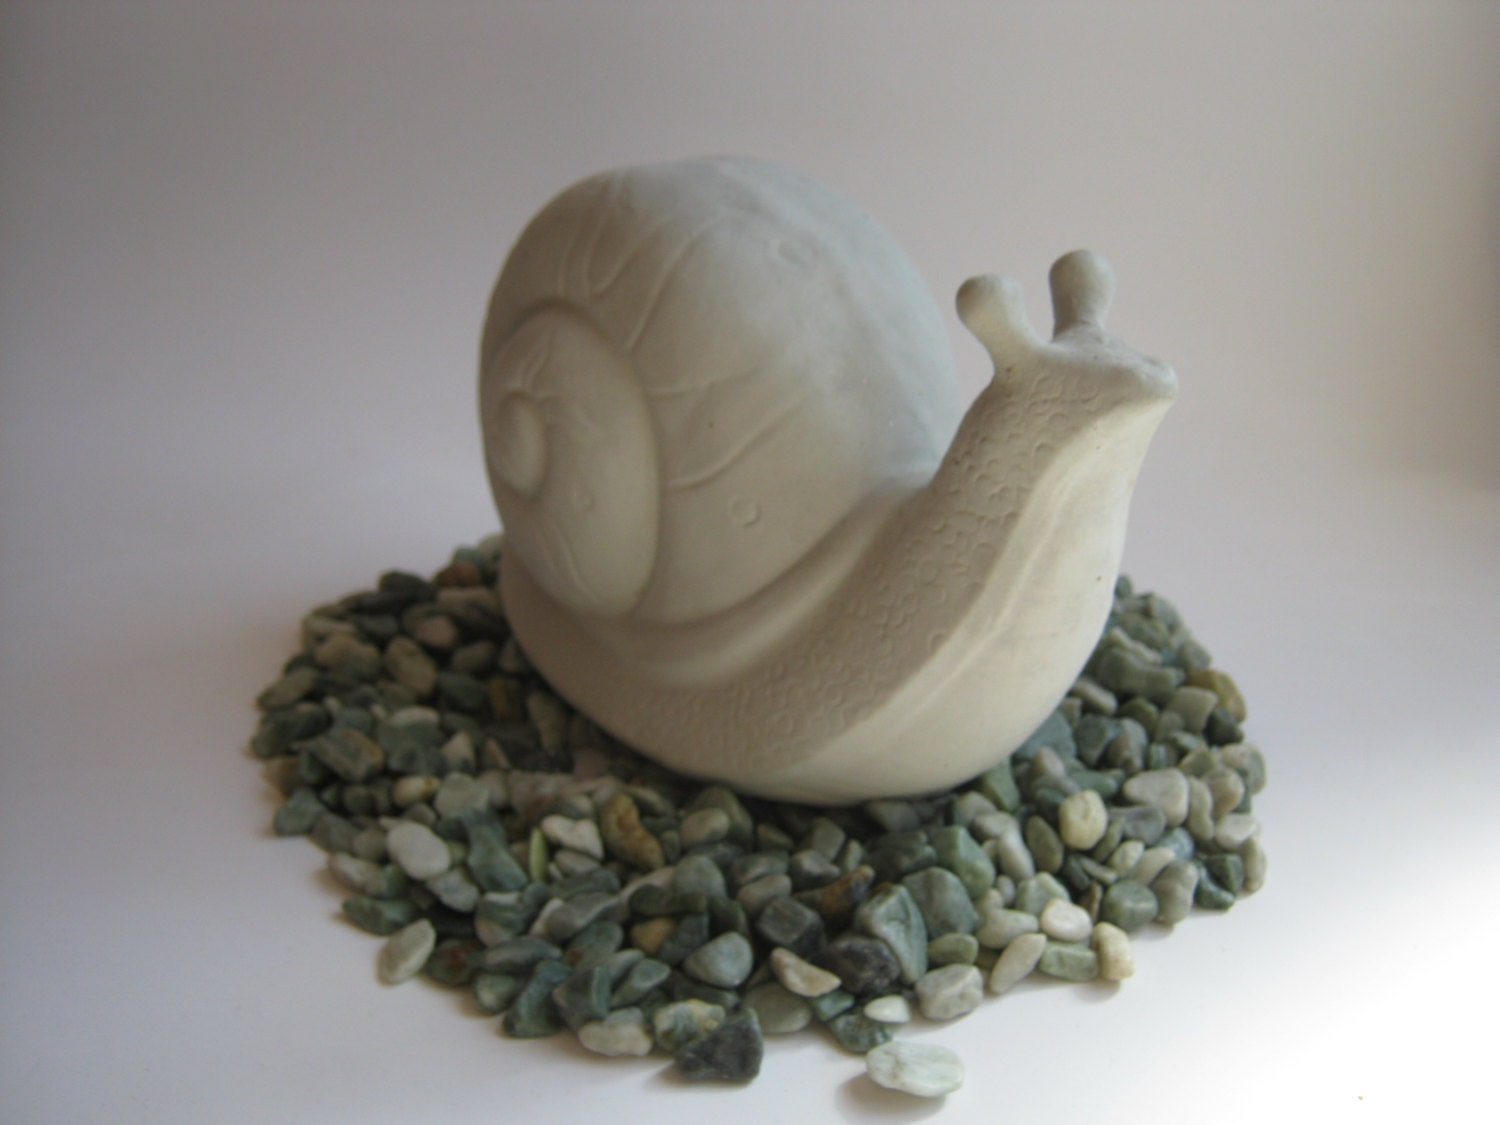 snail concrete statue for garden decor yard art cast in